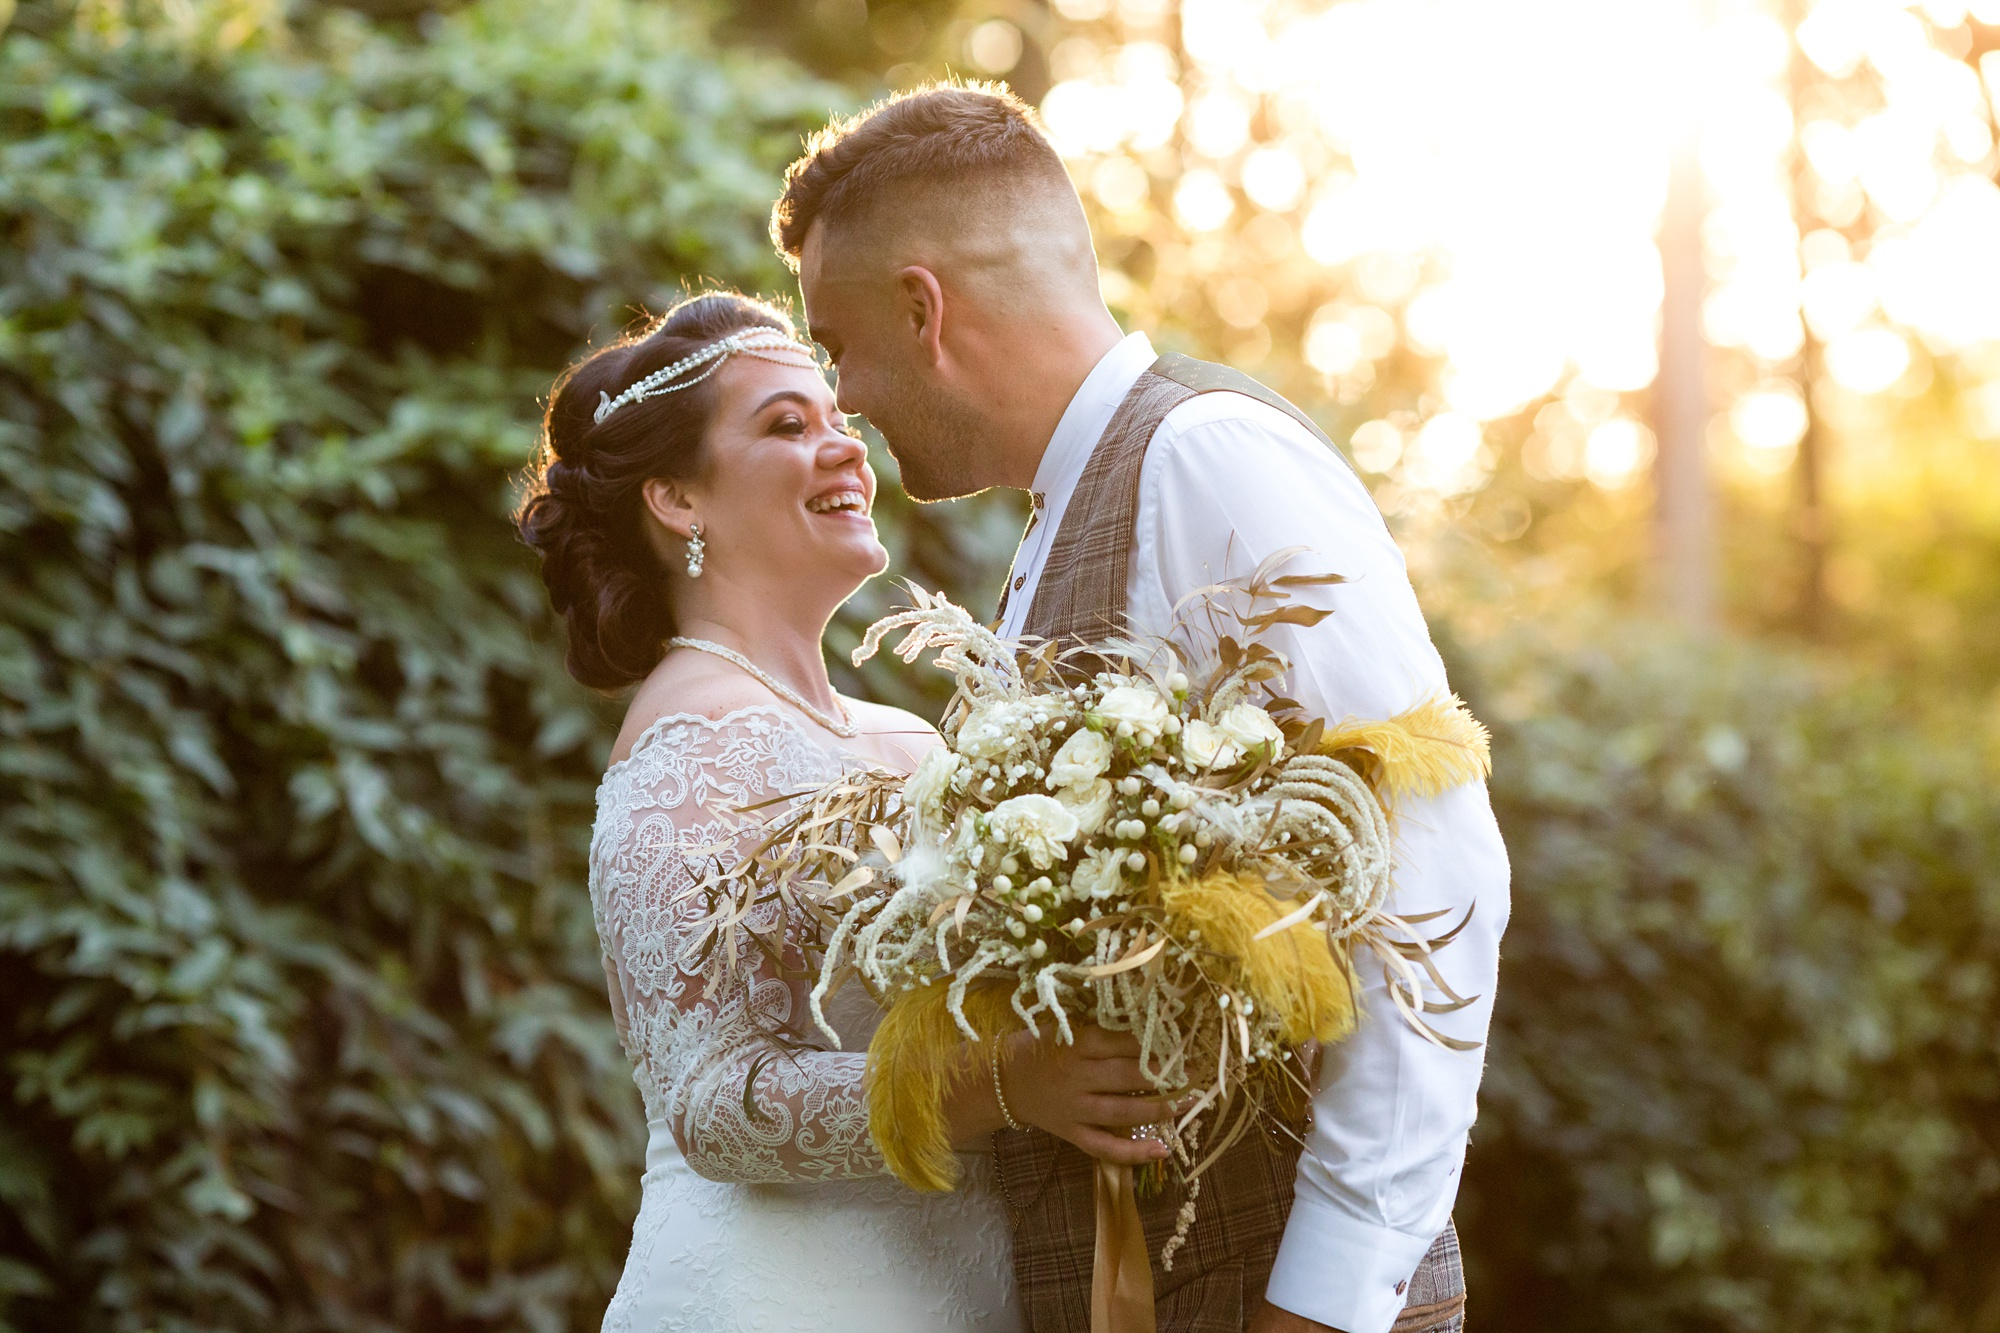 Golden Hour couples portraits at Sandburn Hall wedding.